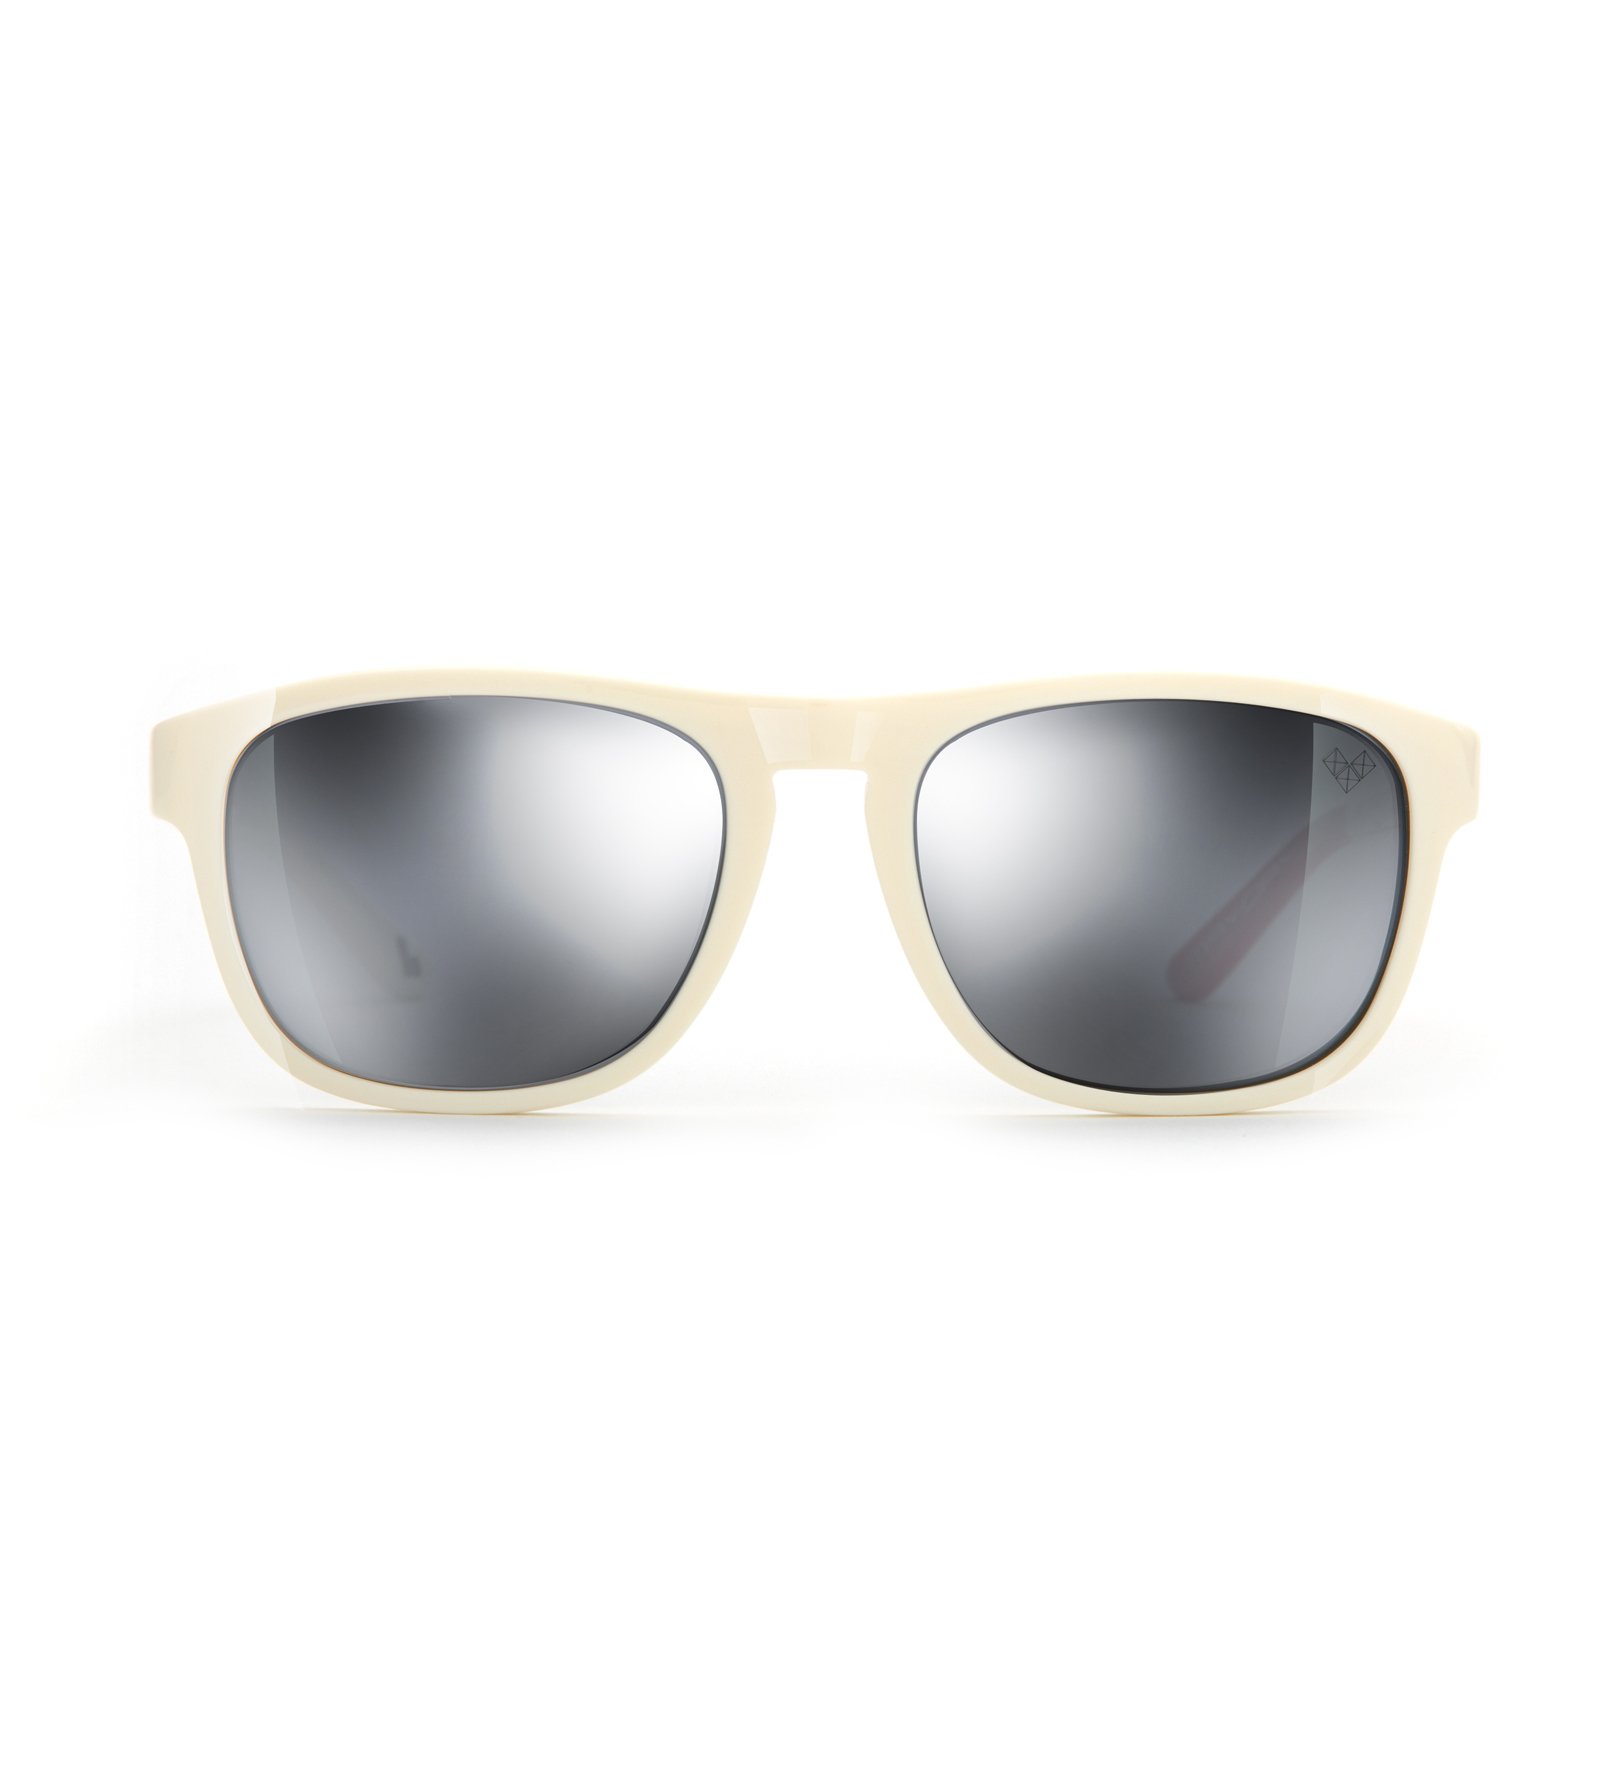 MAYDAY-Md1S-P with Silver Mirror Coating Polarized Lenses